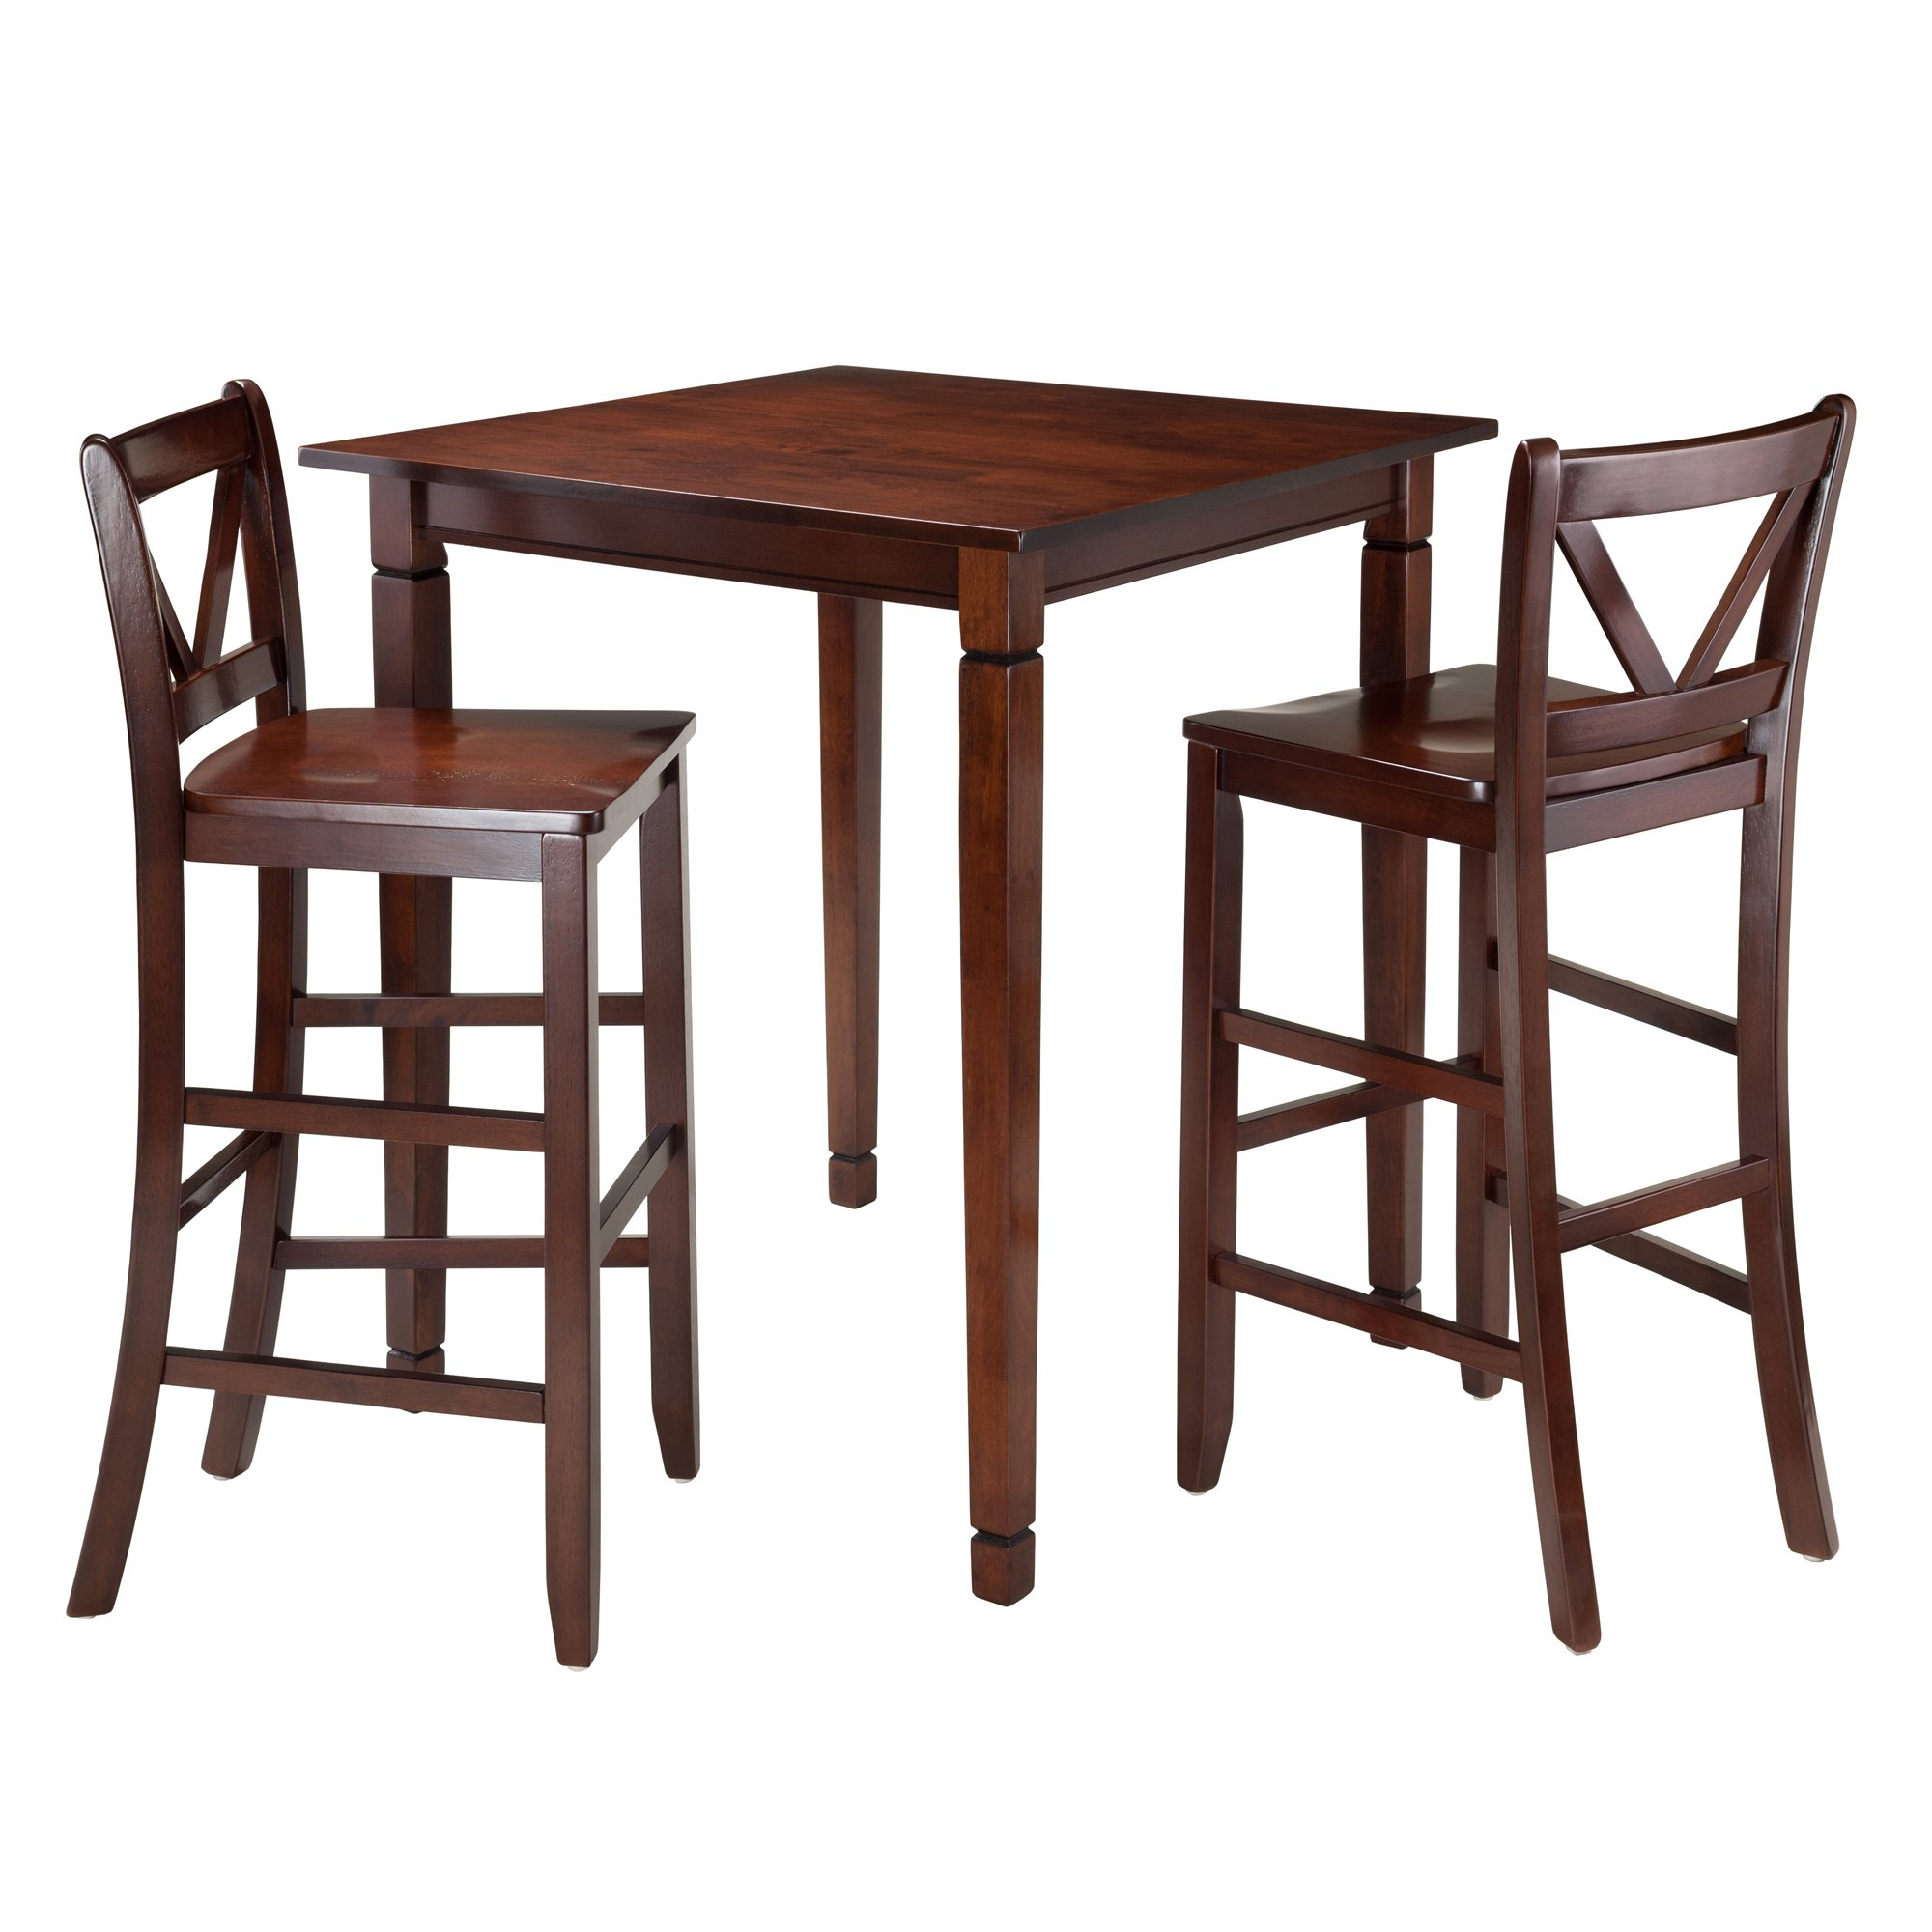 Winsome 3-Piece Kingsgate Dining Table with 2 Bar V-Back Chairs, Brown by Winsome